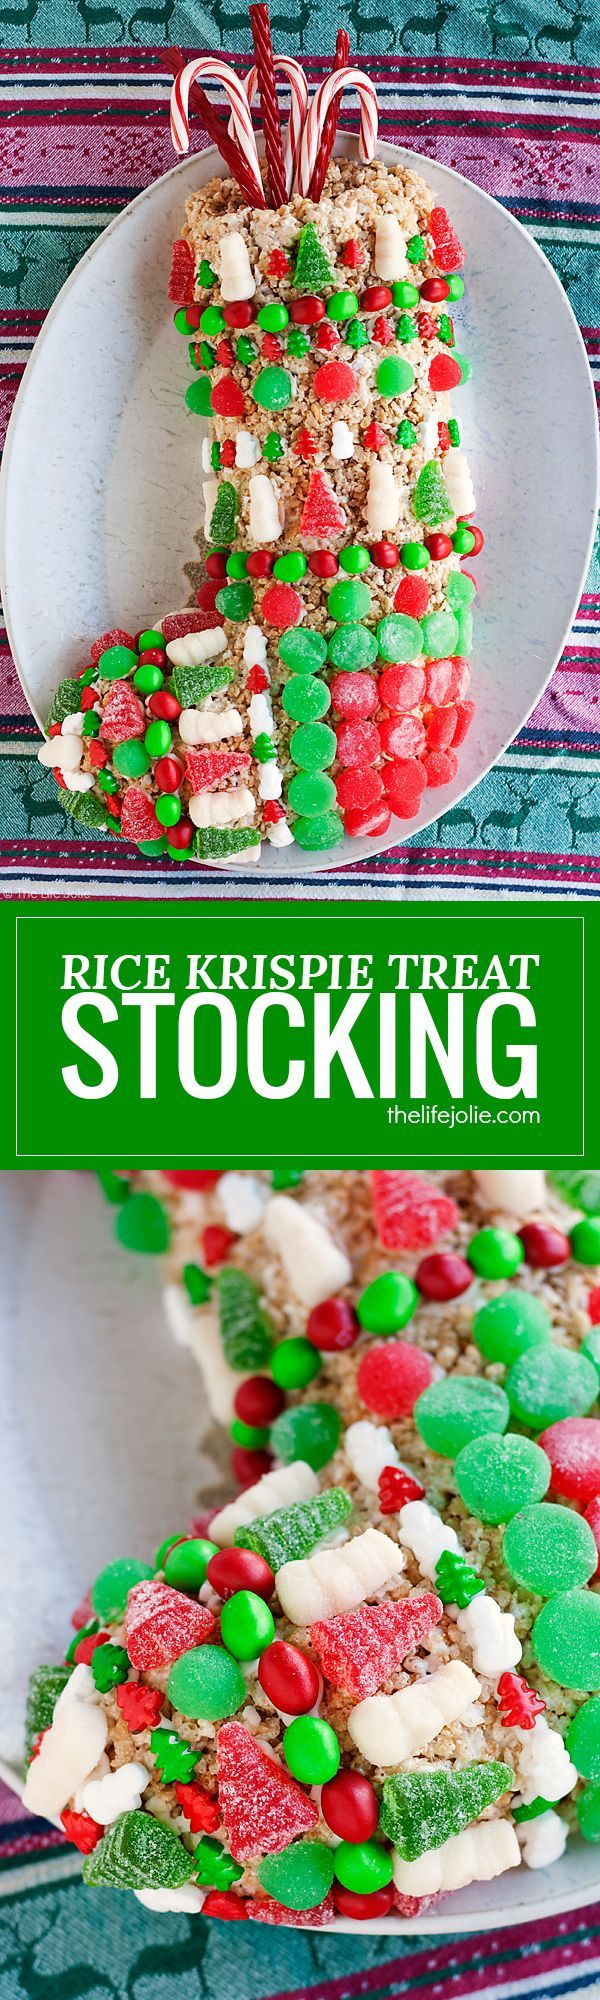 This Rice Krispie Treat Stocking recipe is an easy ...